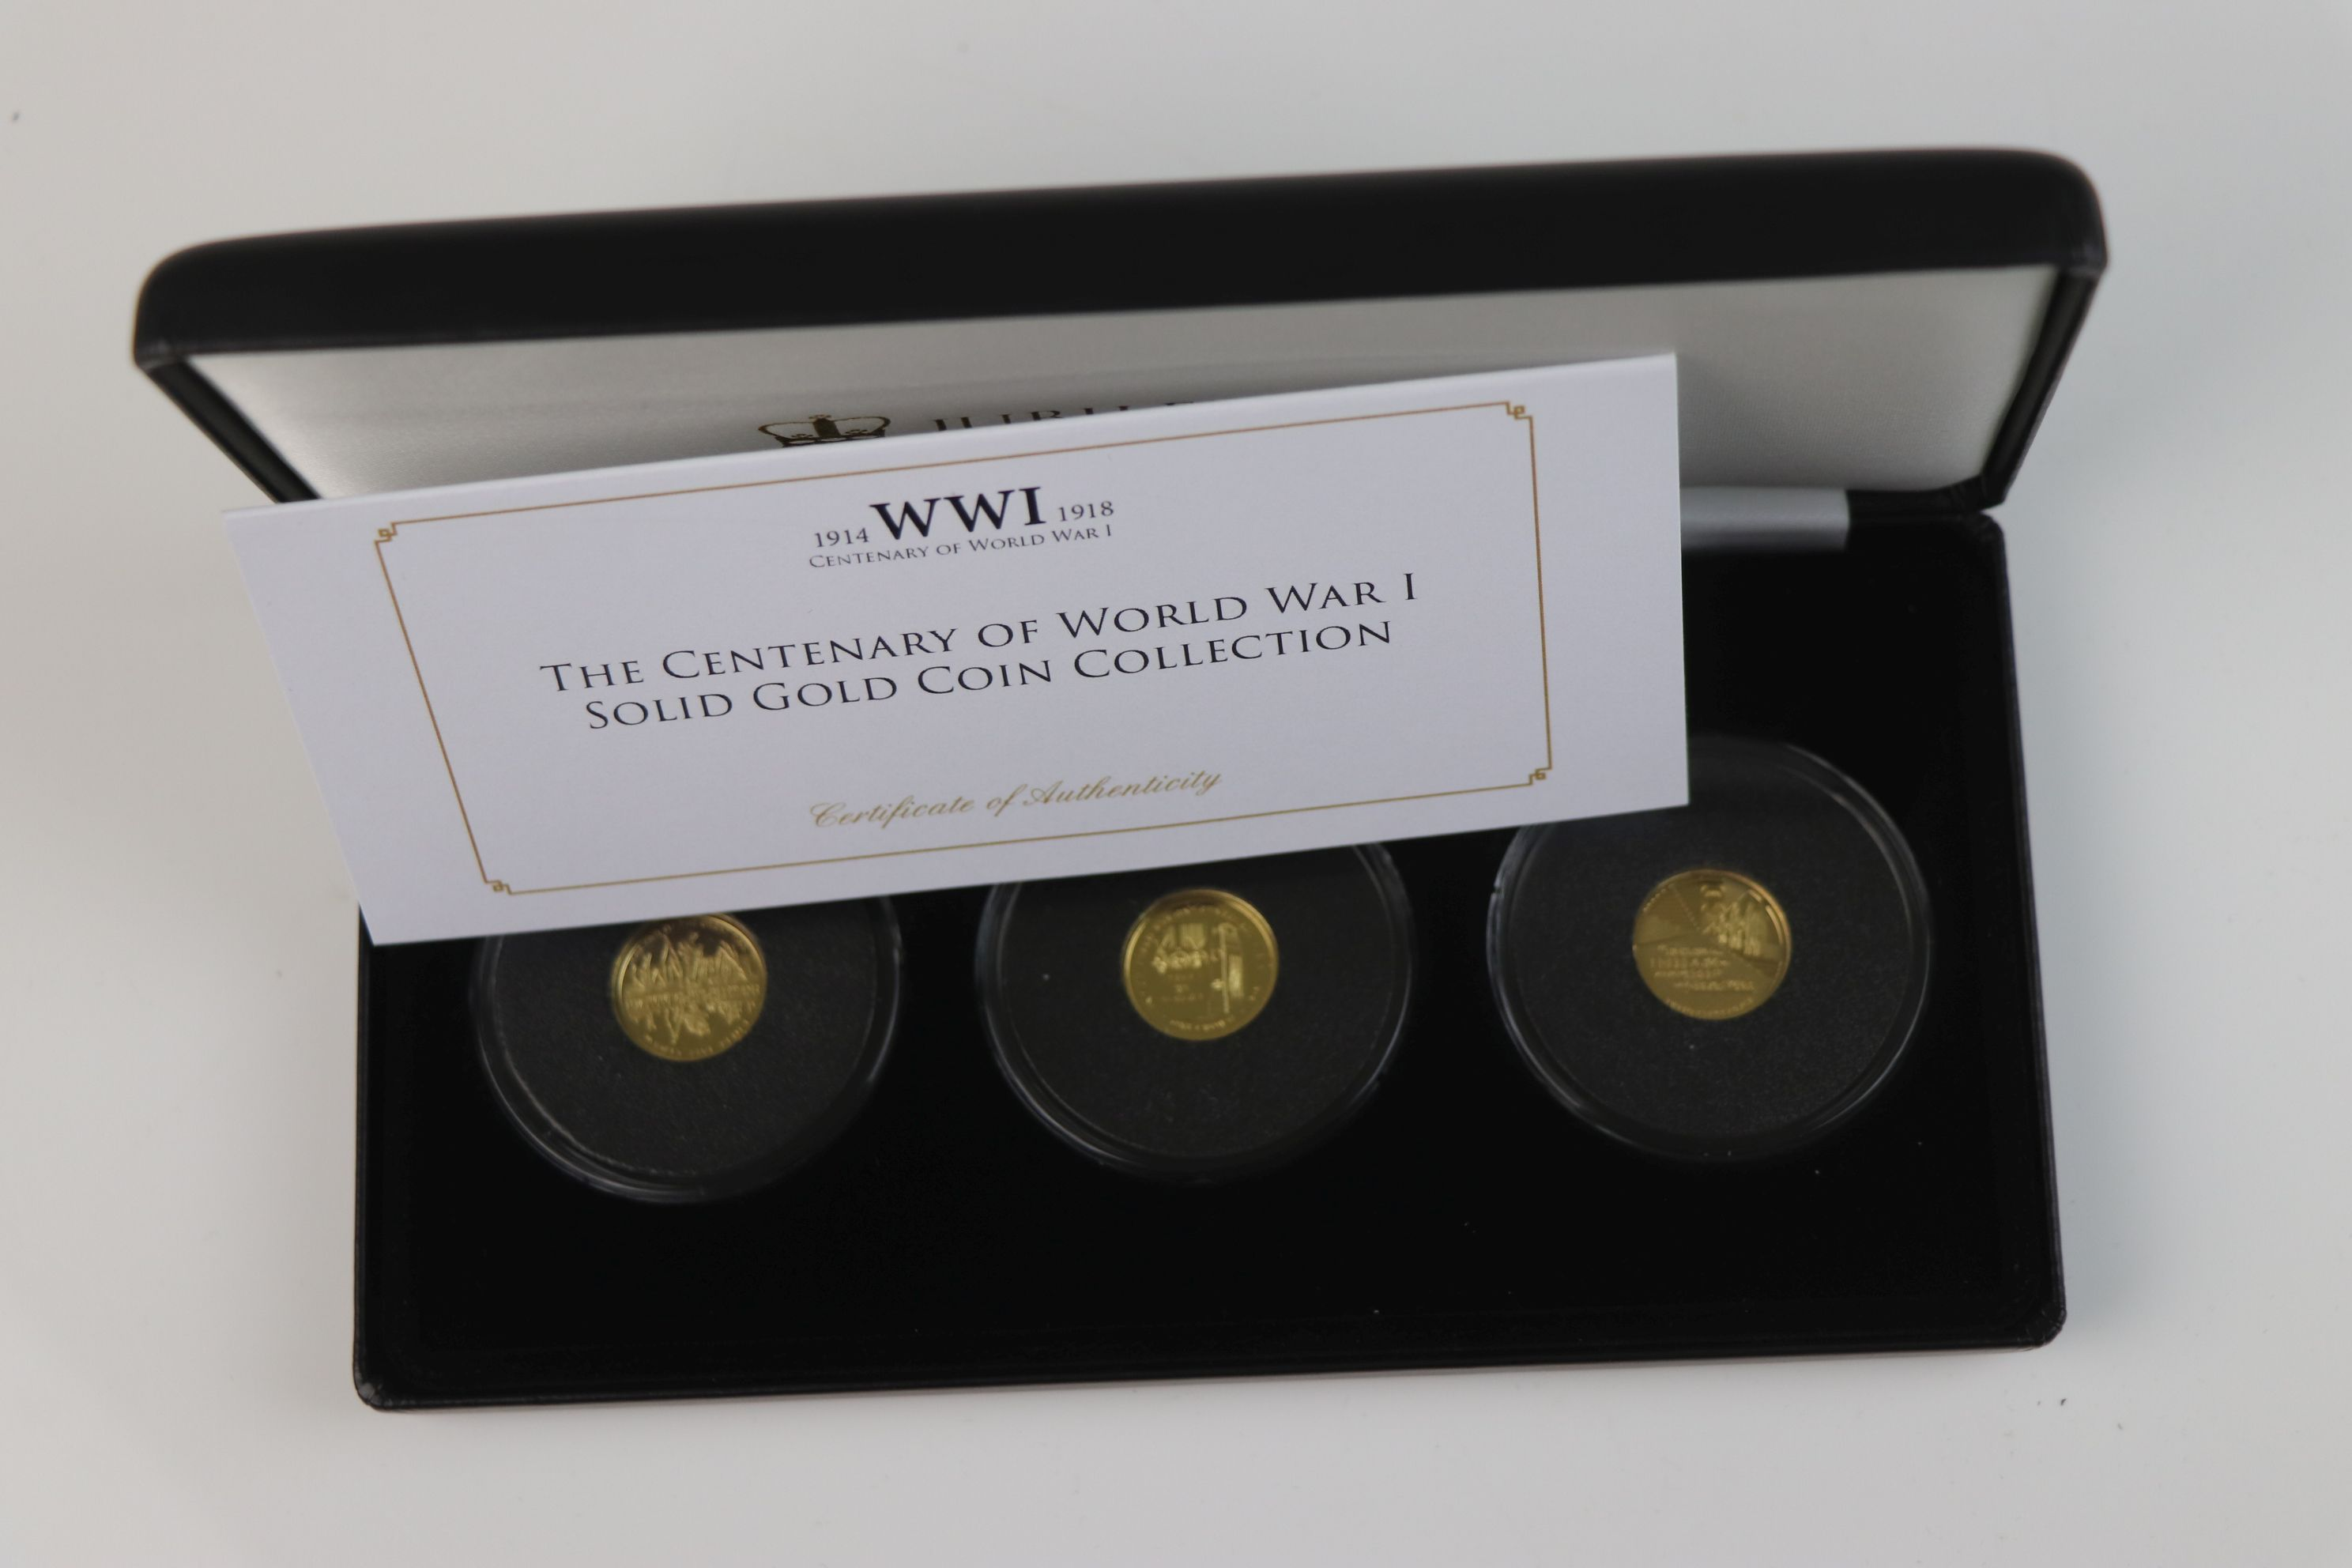 A cased Jubilee Mint limited edition The Centenary of World War One 9ct gold three coin set,